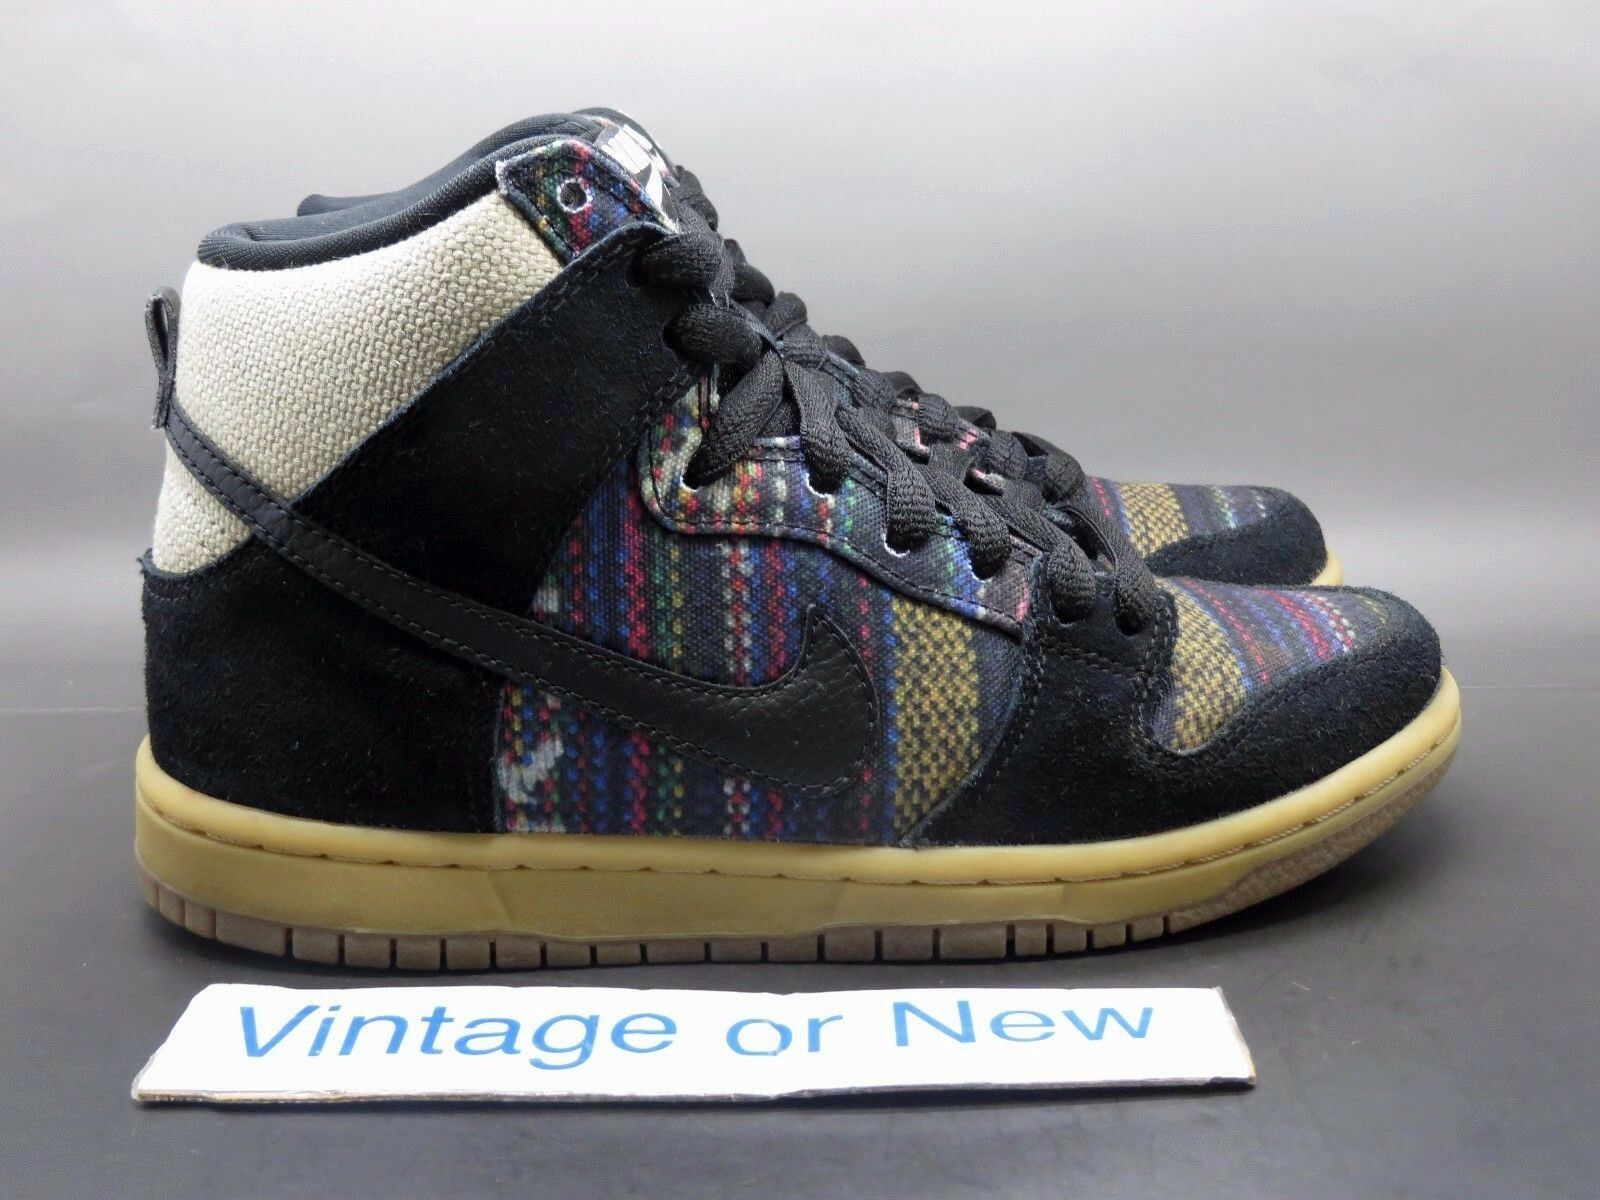 Seasonal clearance sale Nike Dunk High Premium SB Hacky Sack Price reduction